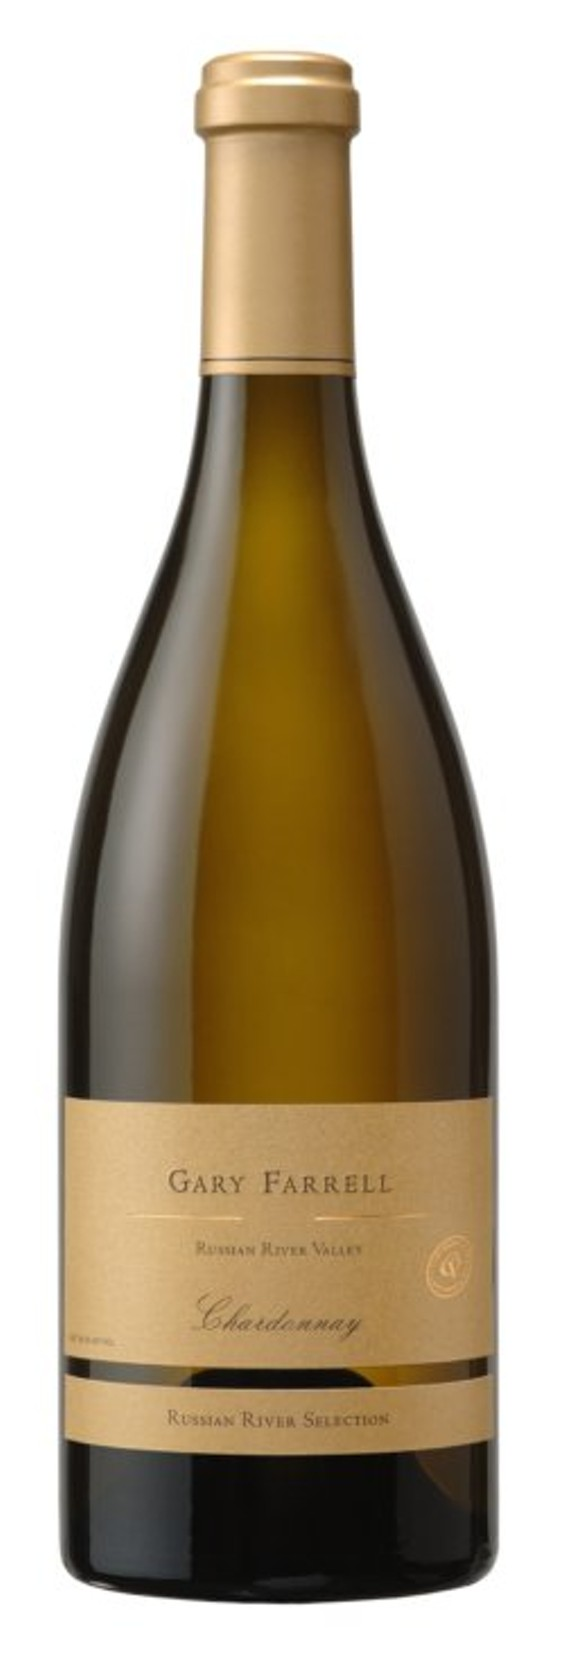 gf_chardonnay_russianriver_nv_750ml_btl_highres_1_.jpg